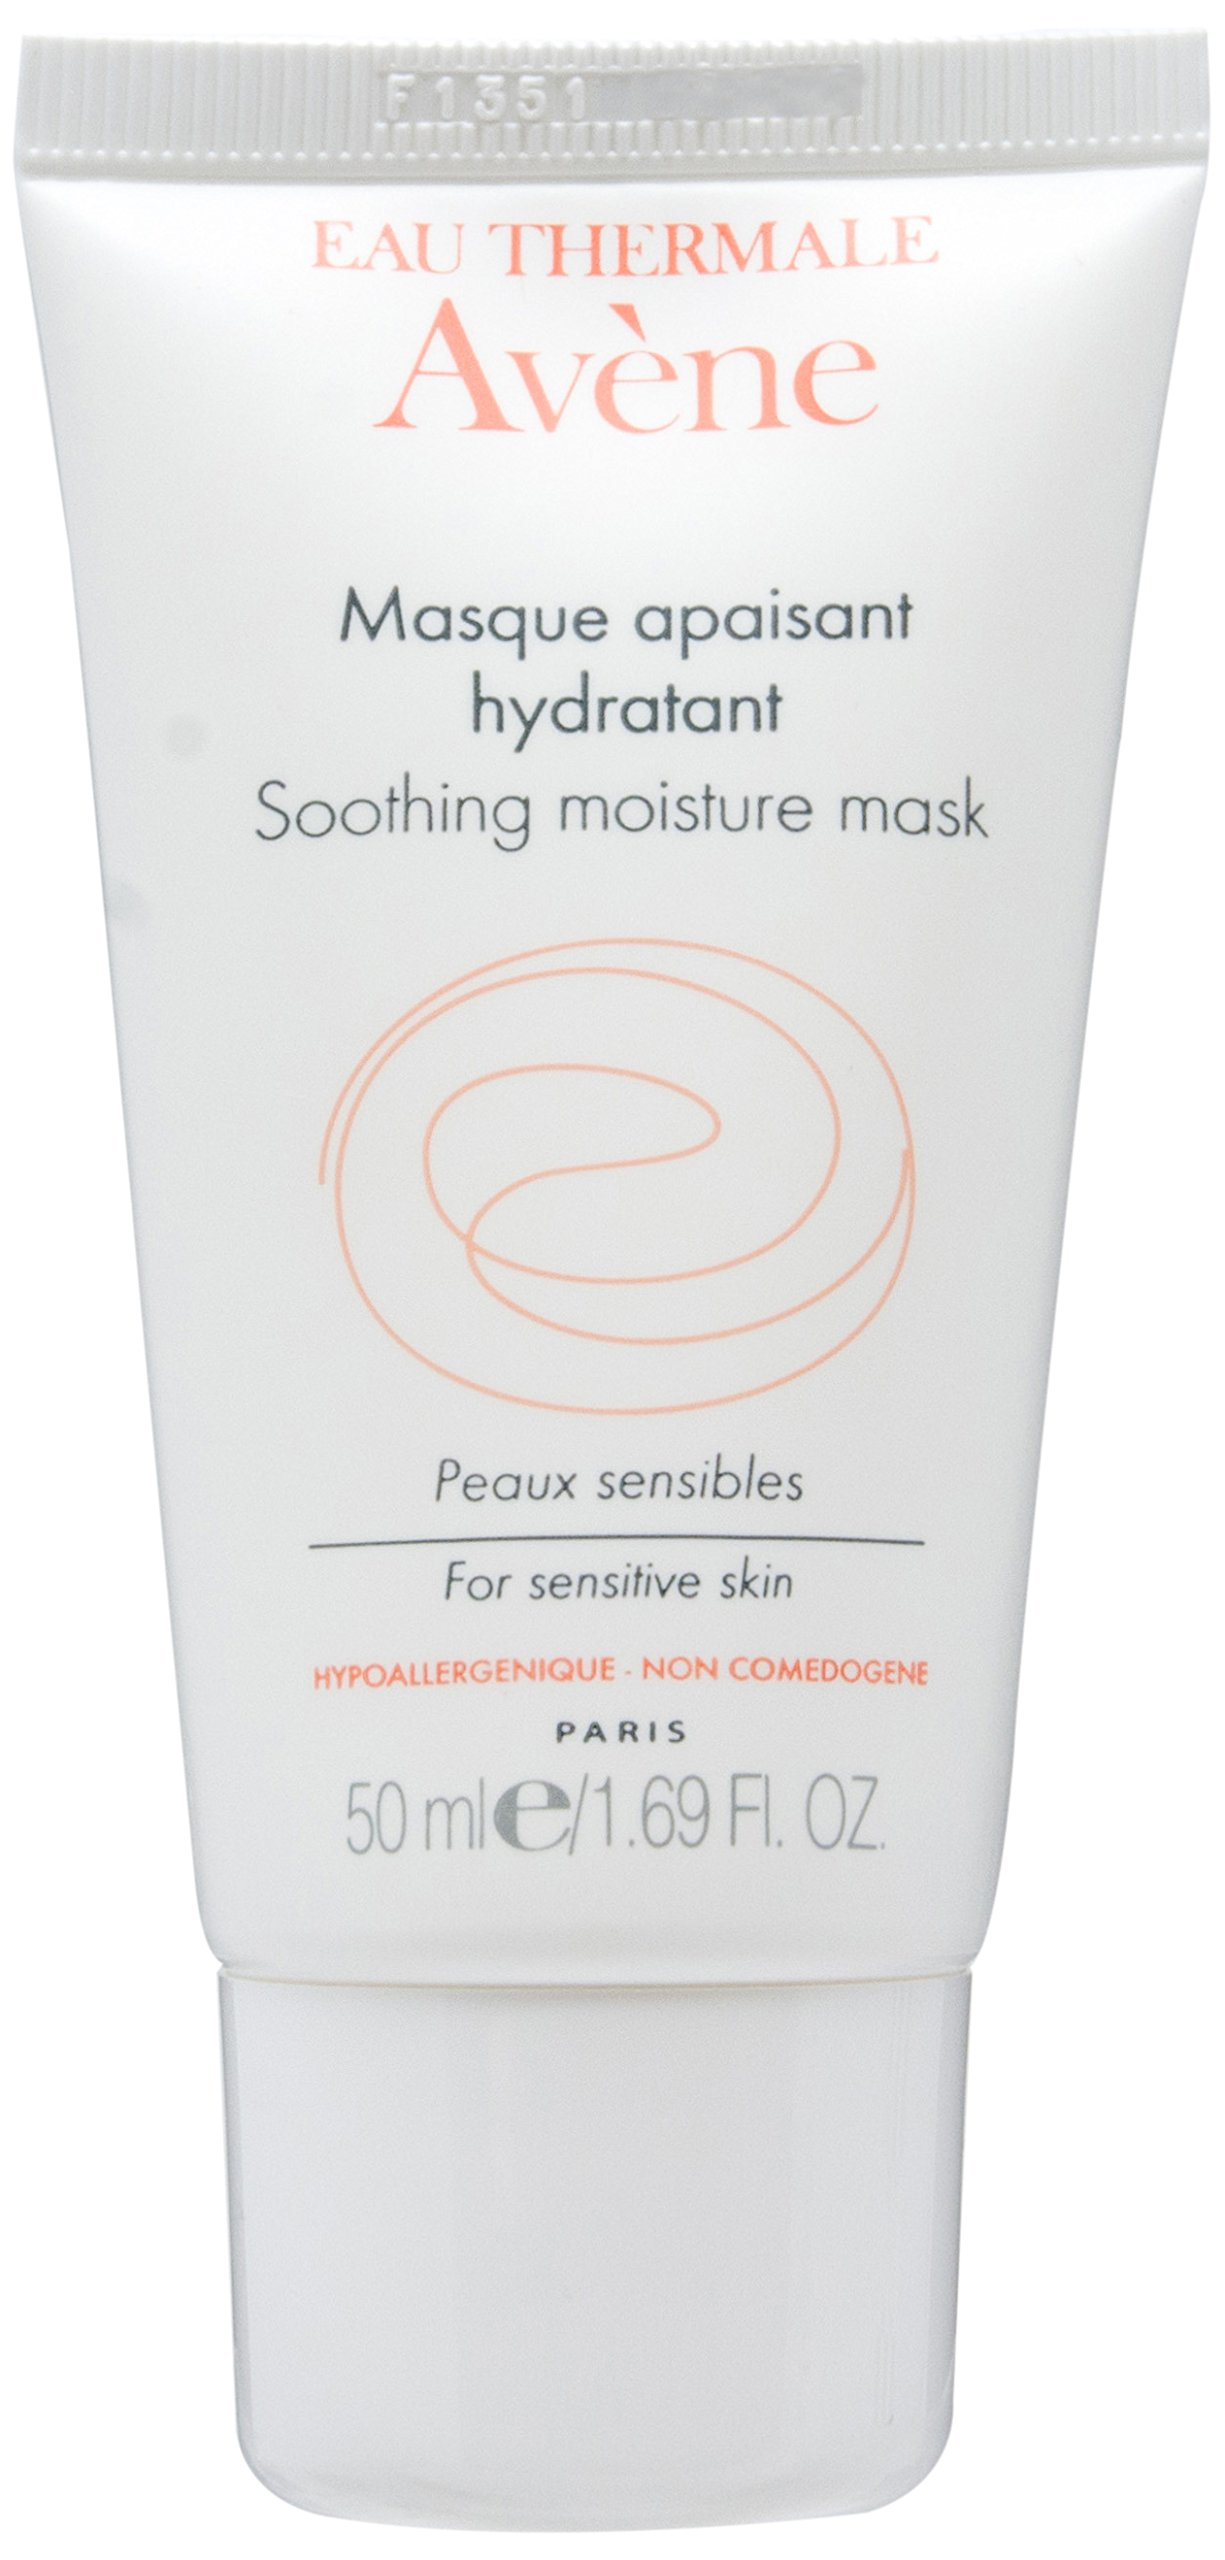 Eau Thermale Avène Soothing Moisture Mask, 1.69 fl. oz.